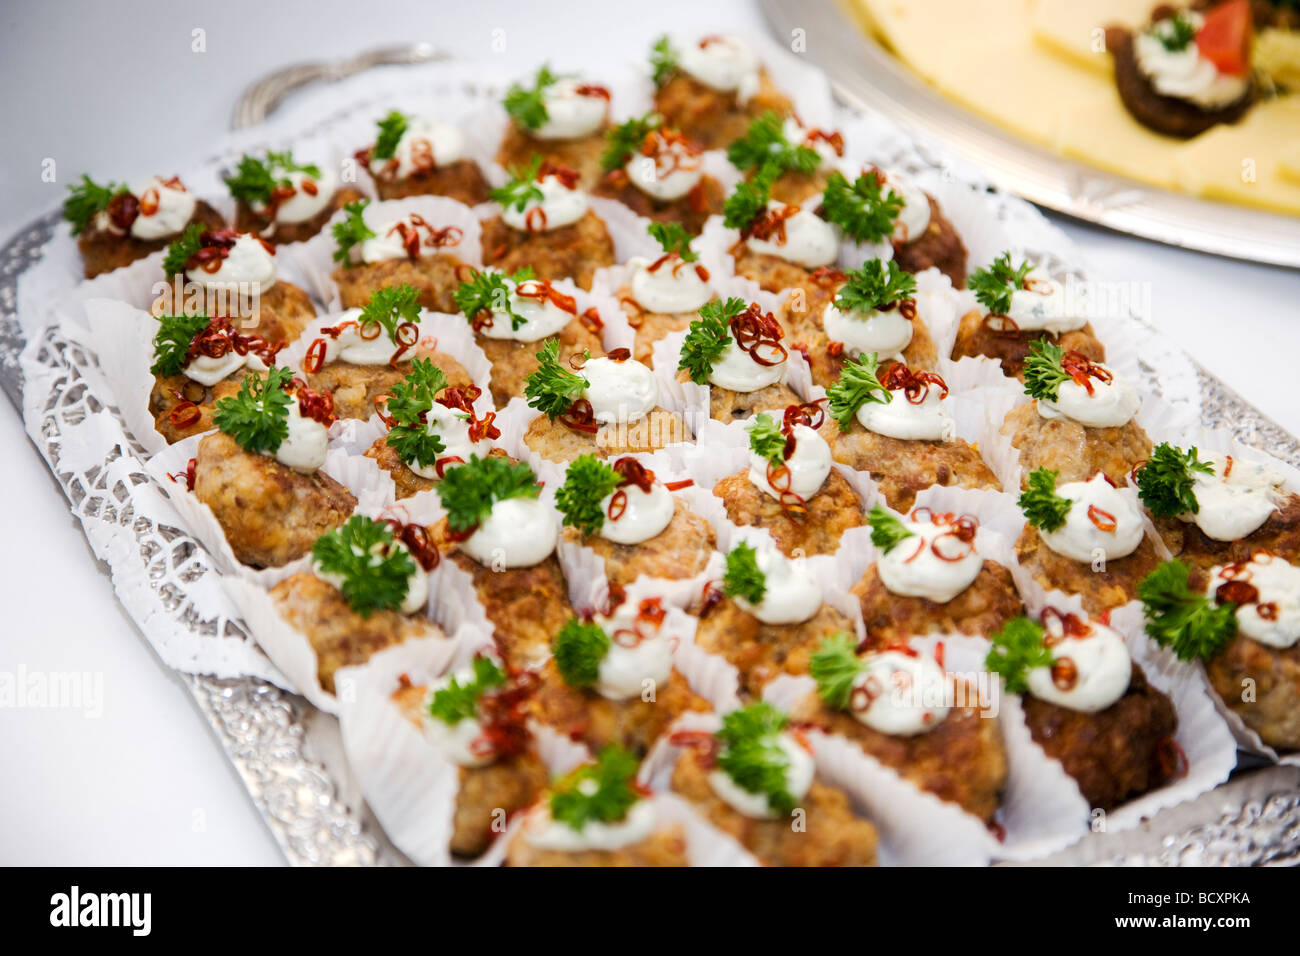 Starter with minced meat balls with decoration - Stock Image